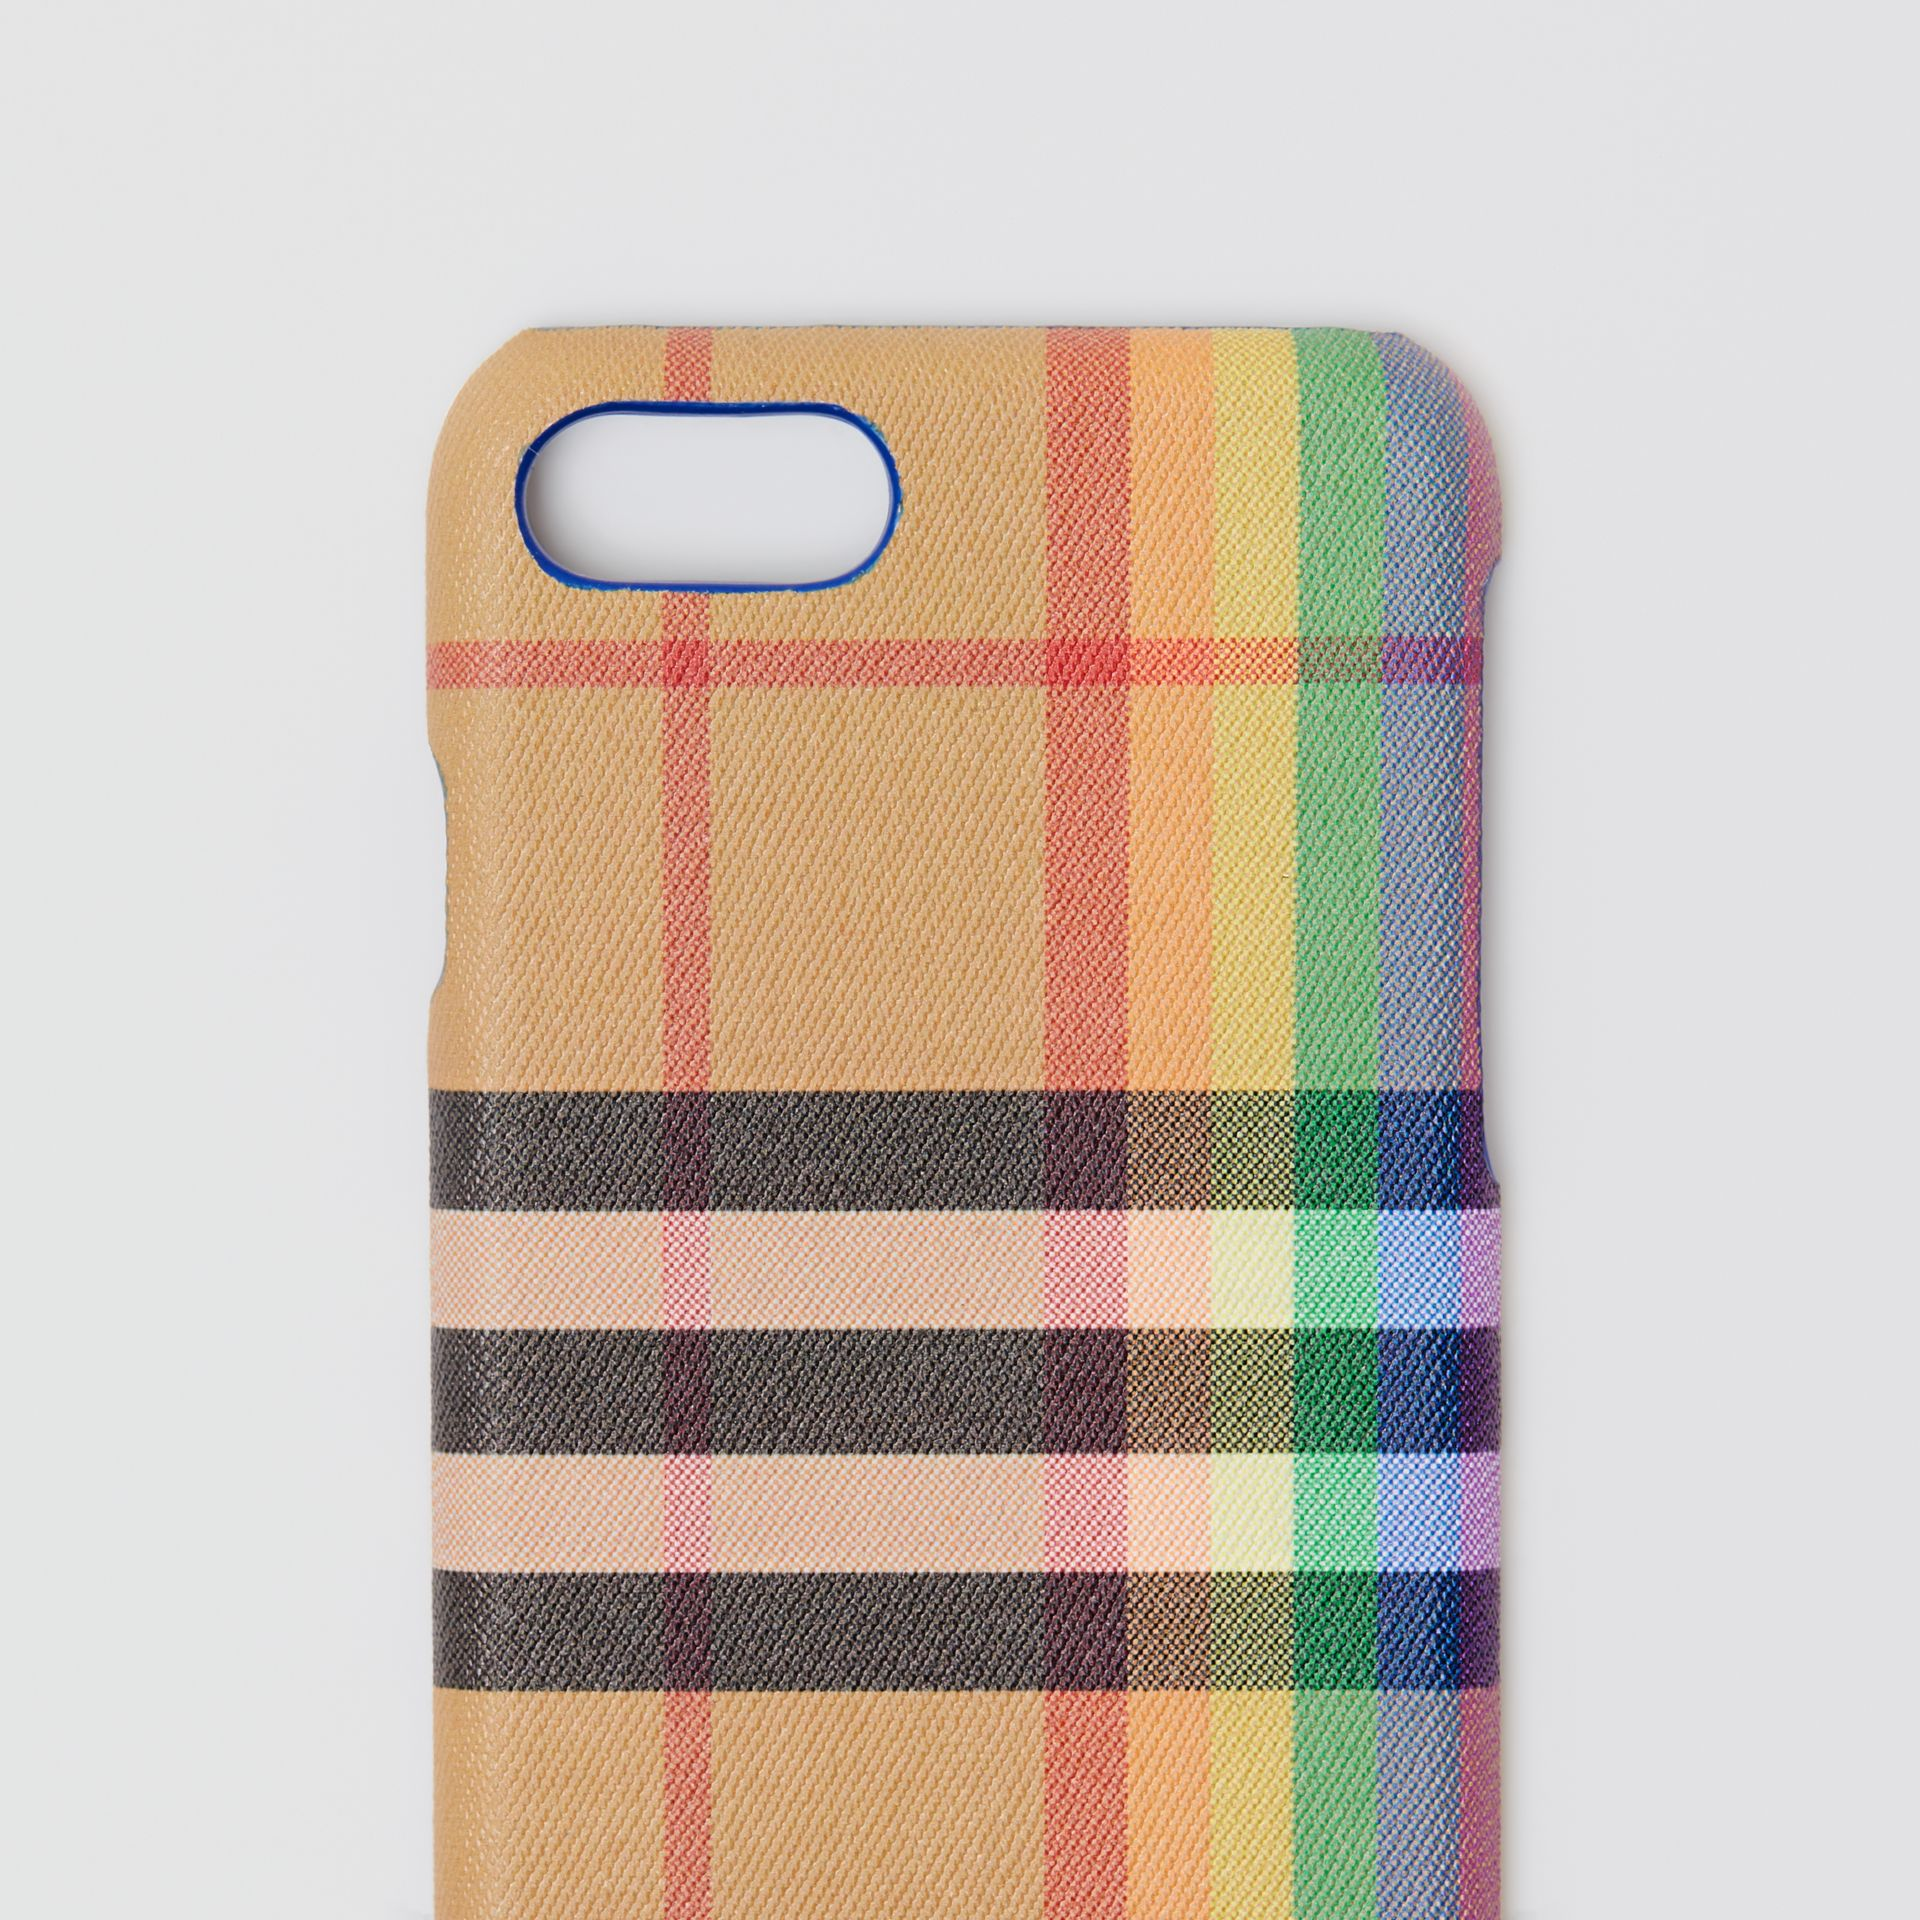 Custodia per iPhone 8 in pelle e motivo Rainbow vintage check (Multicolore/giallo Antico) | Burberry - immagine della galleria 1